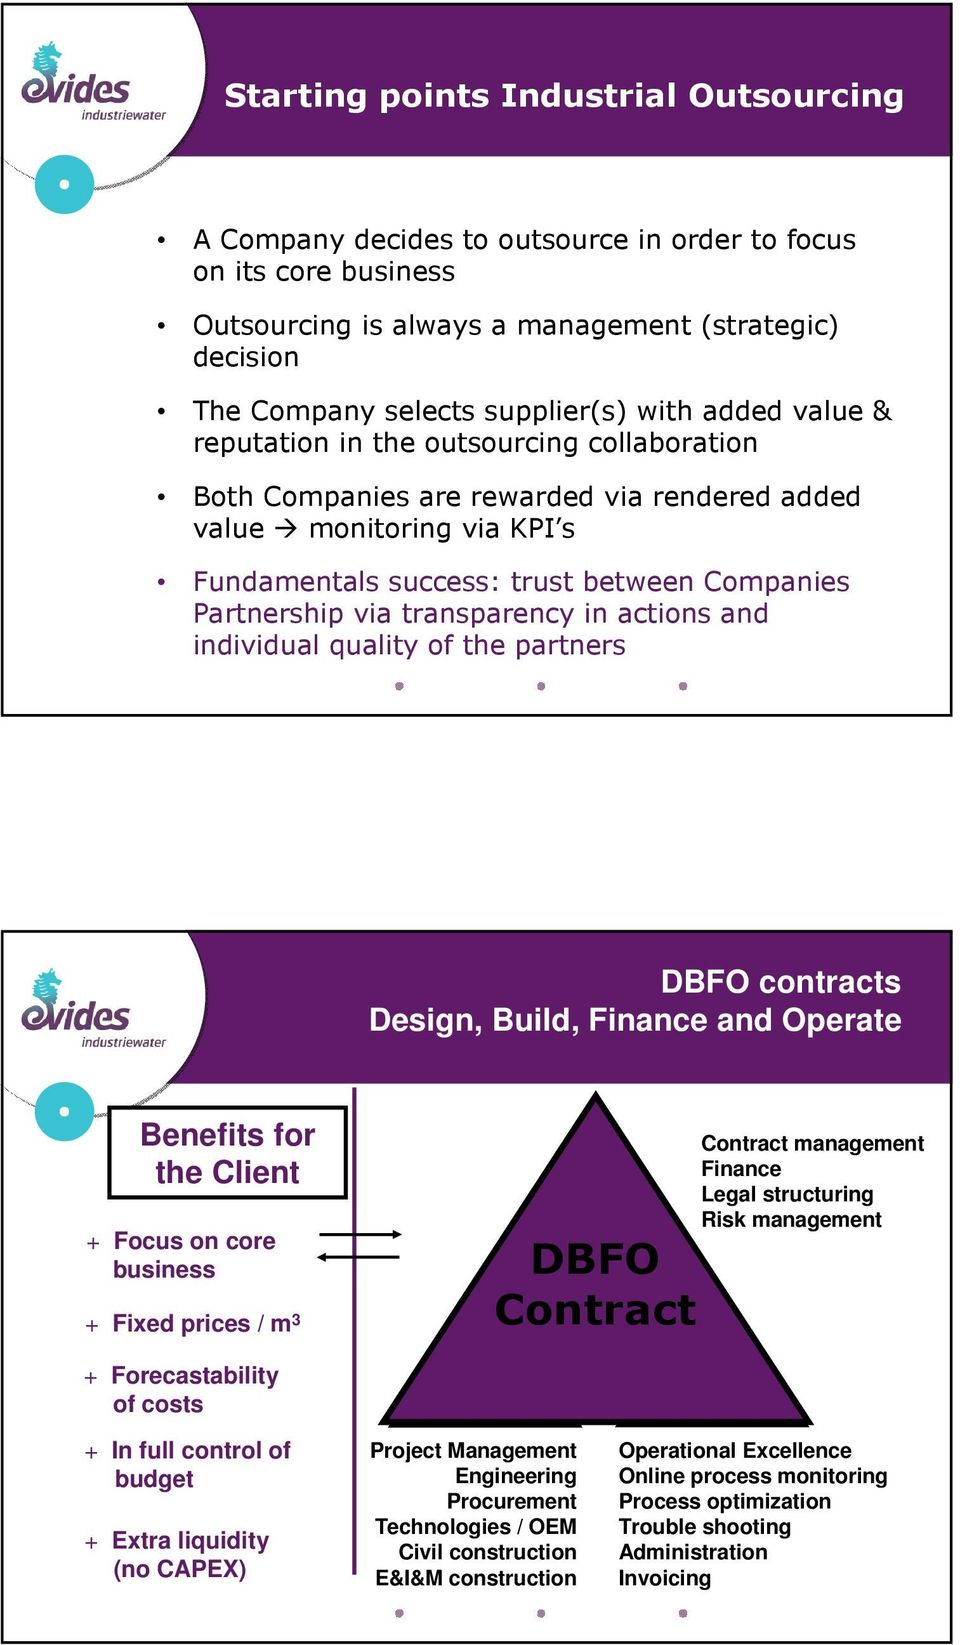 transparency in actions and individual quality of the partners DBFO contracts Design, Build, Finance and Operate Benefits for the Client + Focus on core business + Fixed prices / m 3 +